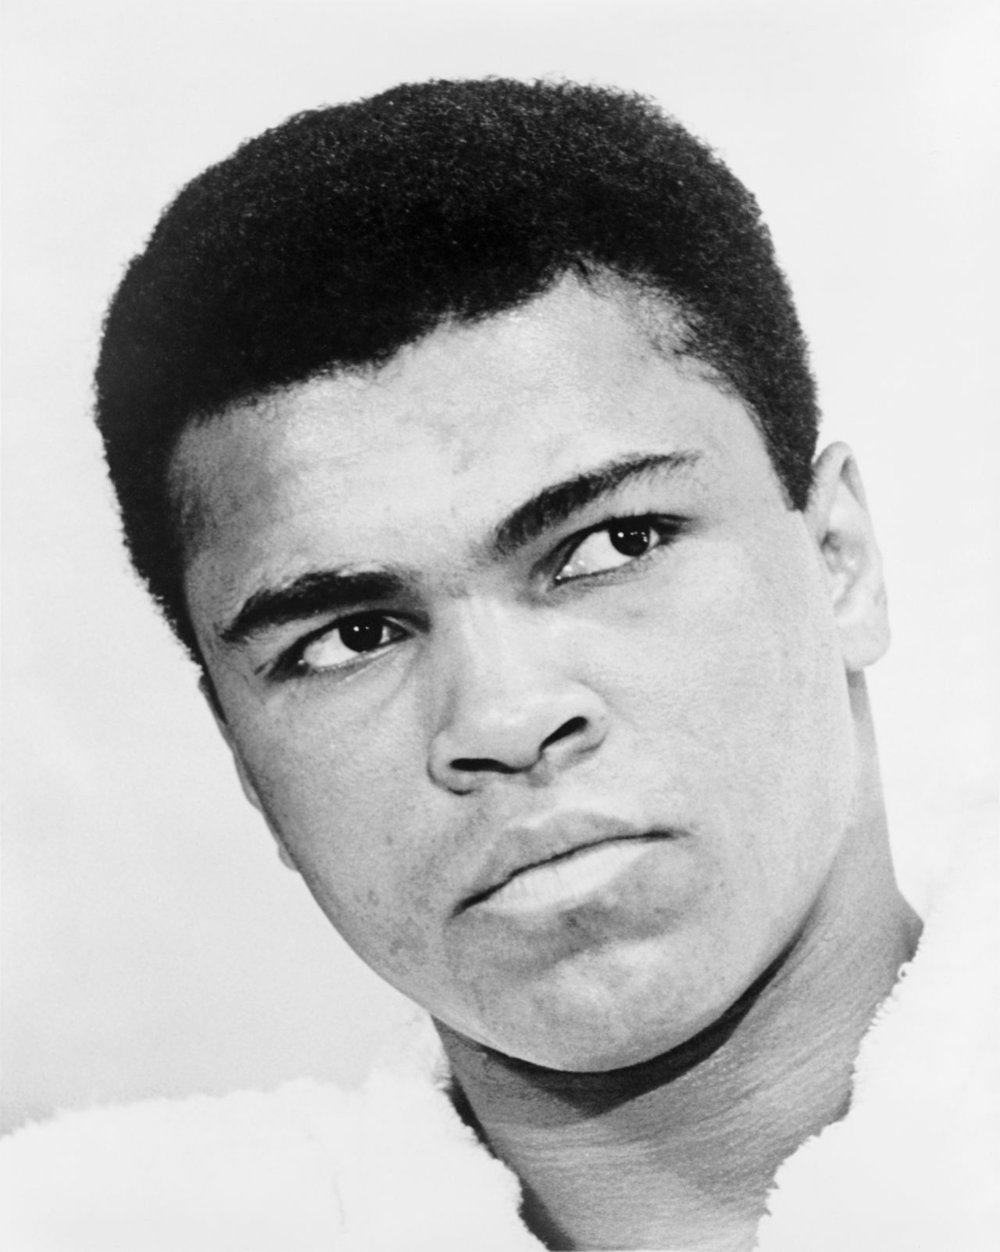 On Oct. 29, 1960, heavyweight boxer Cassius Clay won his first major professional fight against Tunny Hunsaker. Four years later, he defeated world champion Sonny Liston in a major upset to claim the title in 1964. Shortly afterwards, he changed his name to Muhammad Ali. ( Ira Rosenberg/Wikimedia Commons )